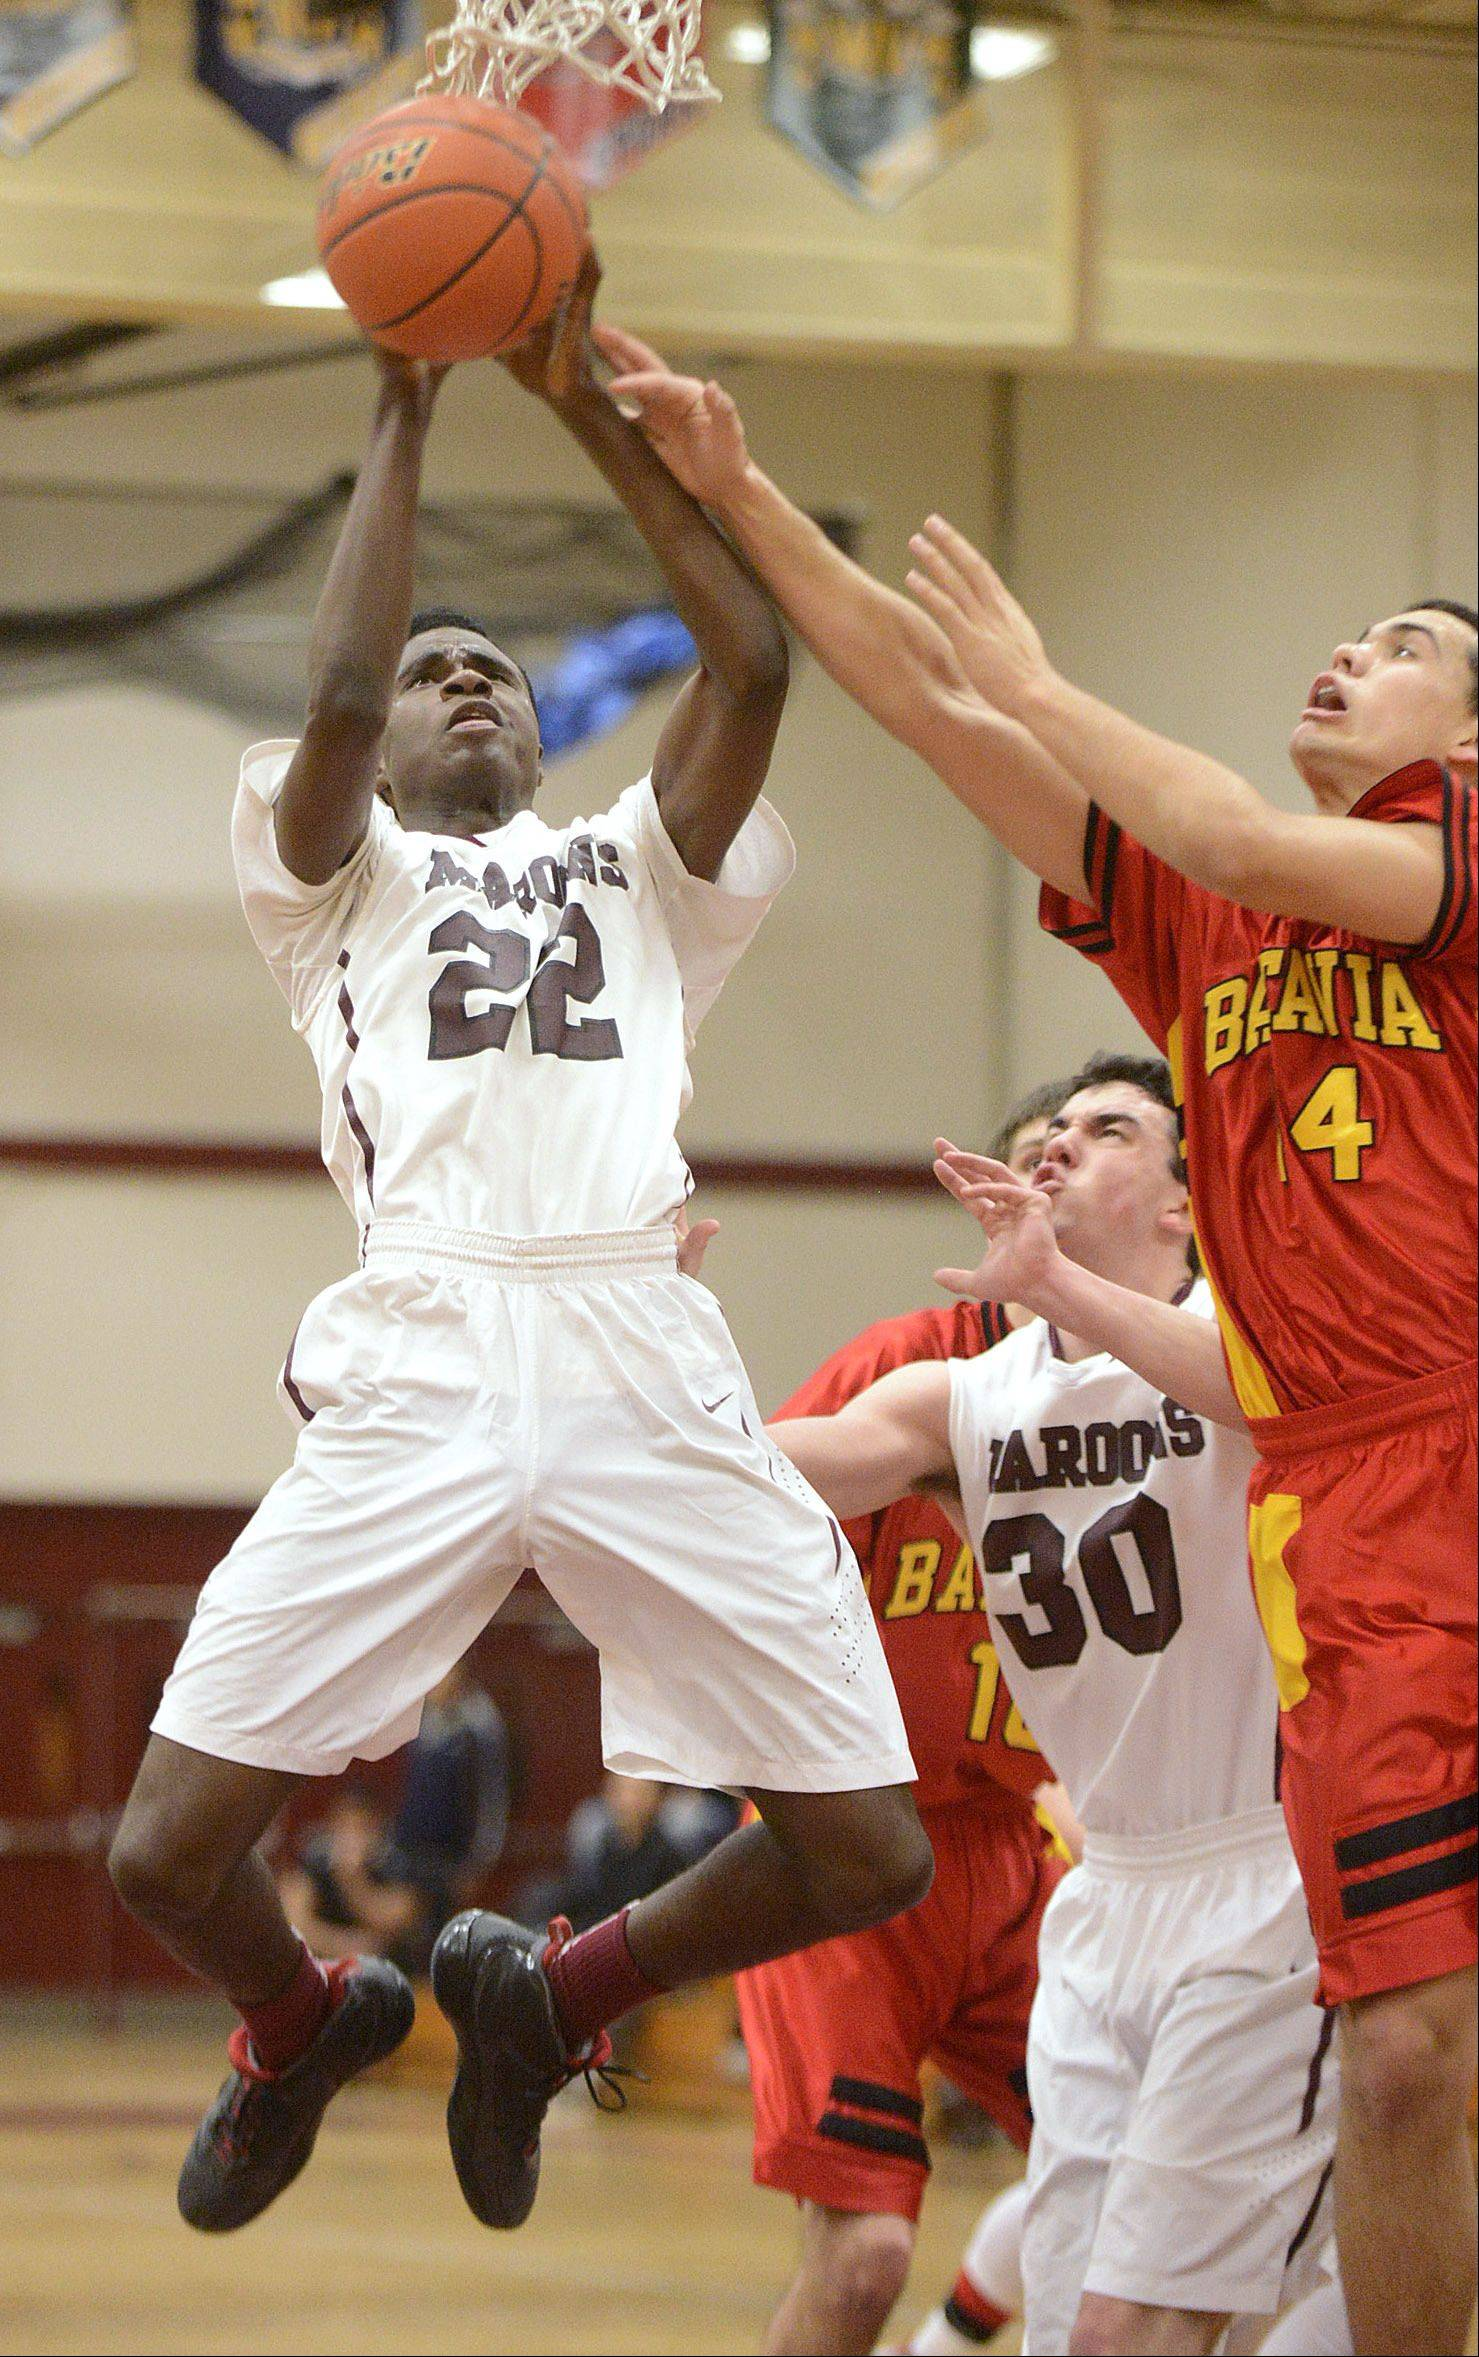 Elgin's Desmond Sanders sinks a shot around Batavia's Micah Coffey in the third quarter on Saturday, January 18.